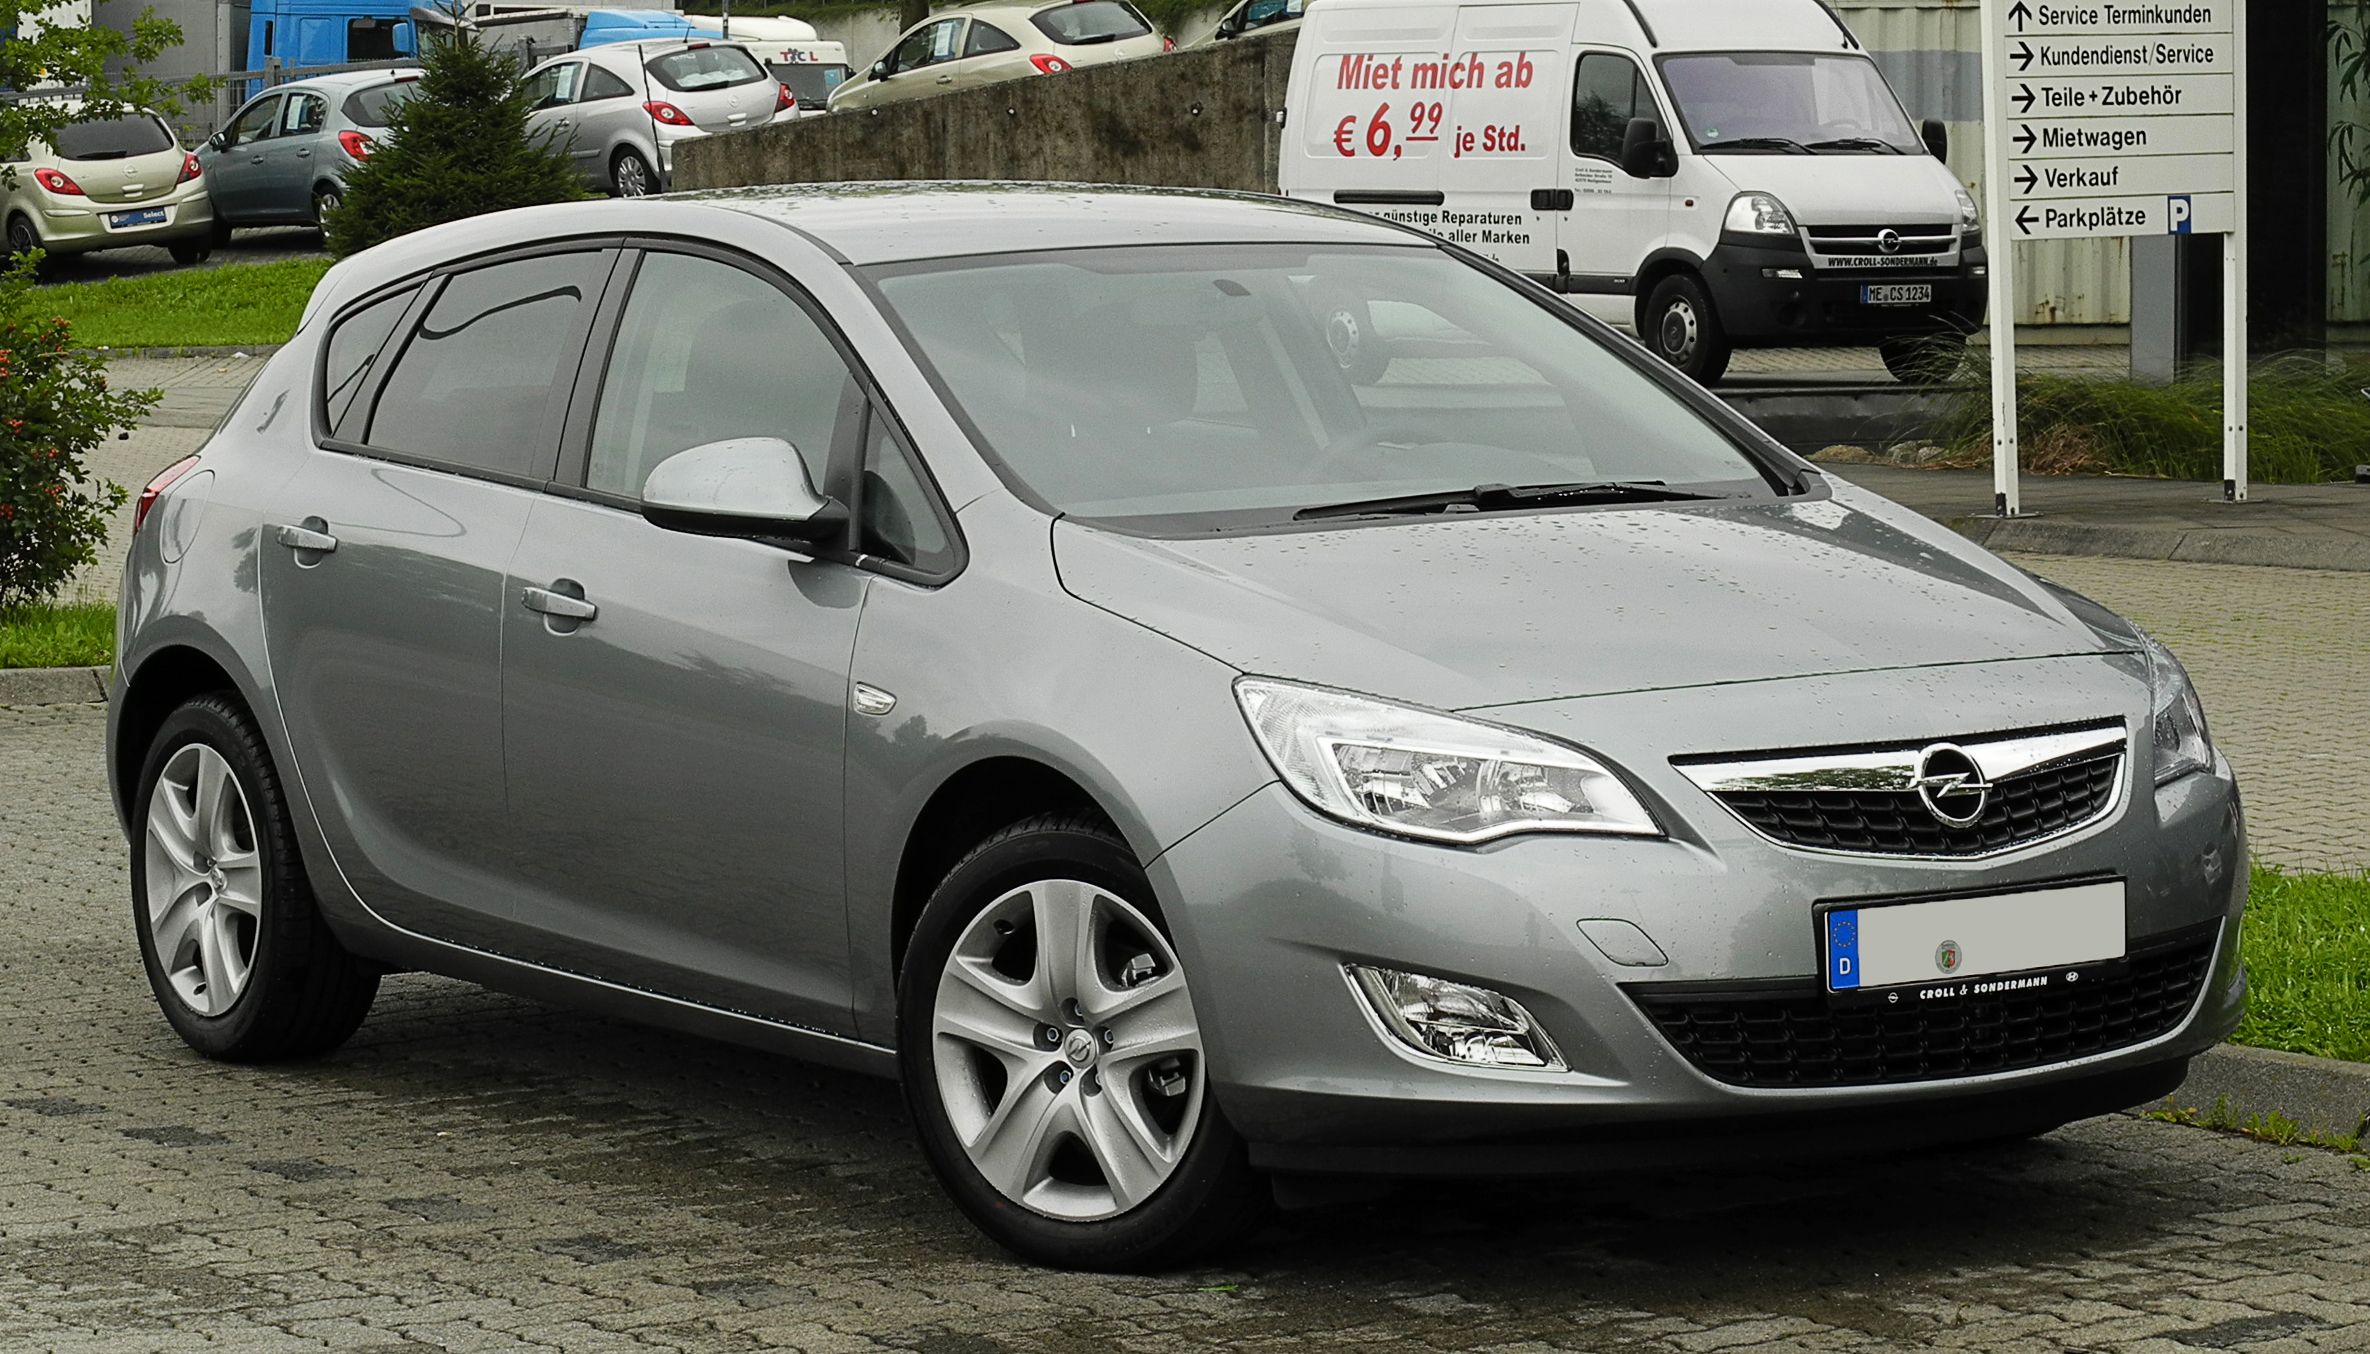 Opel Astra Wikipedie